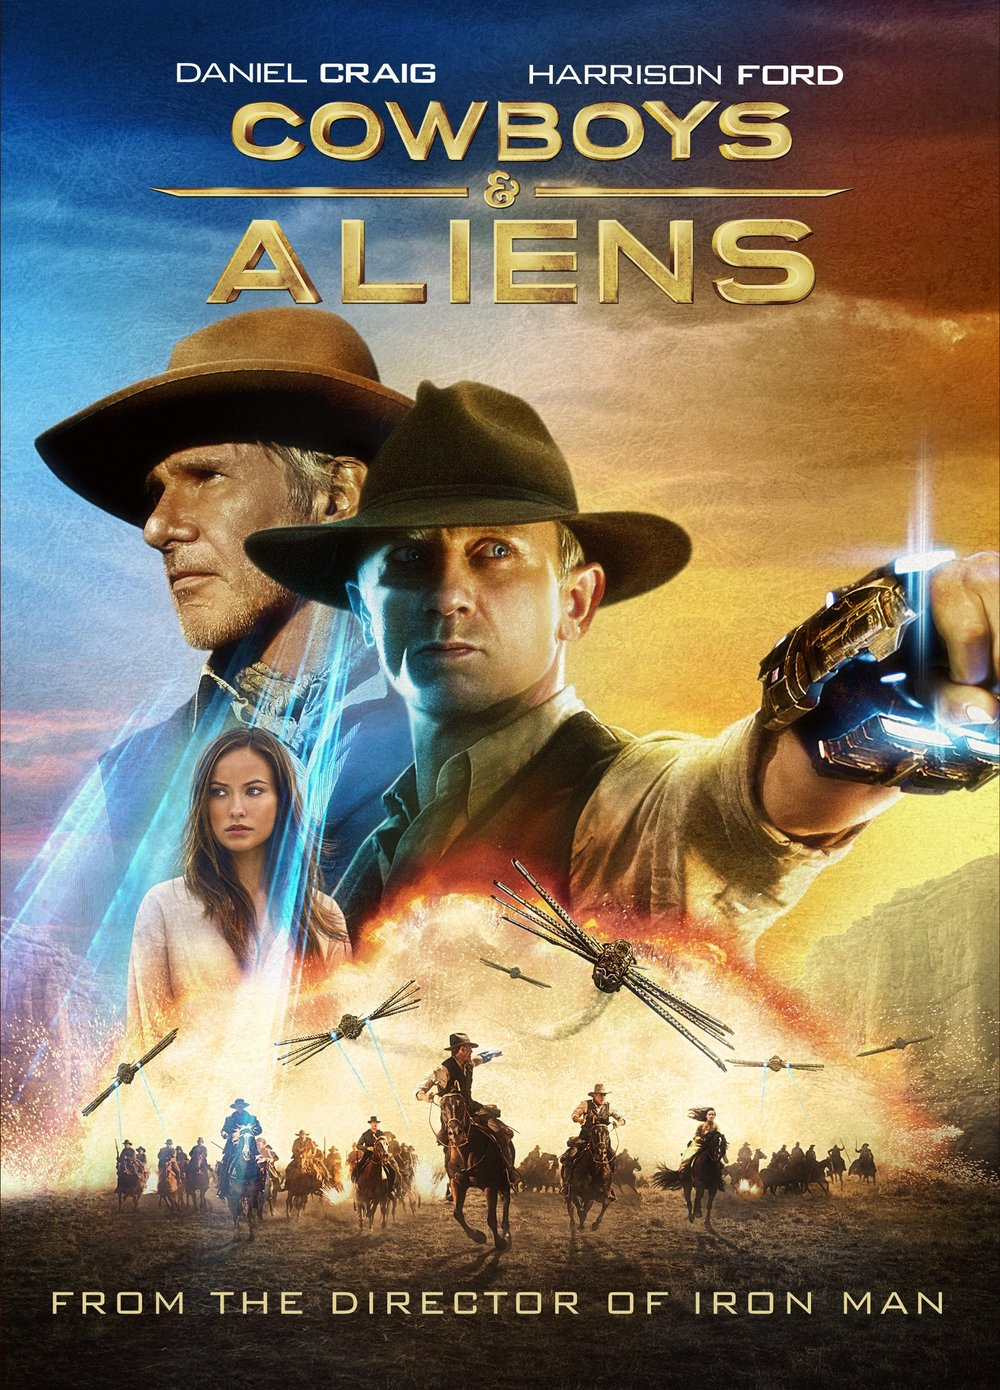 cowboys and aliens.jpg